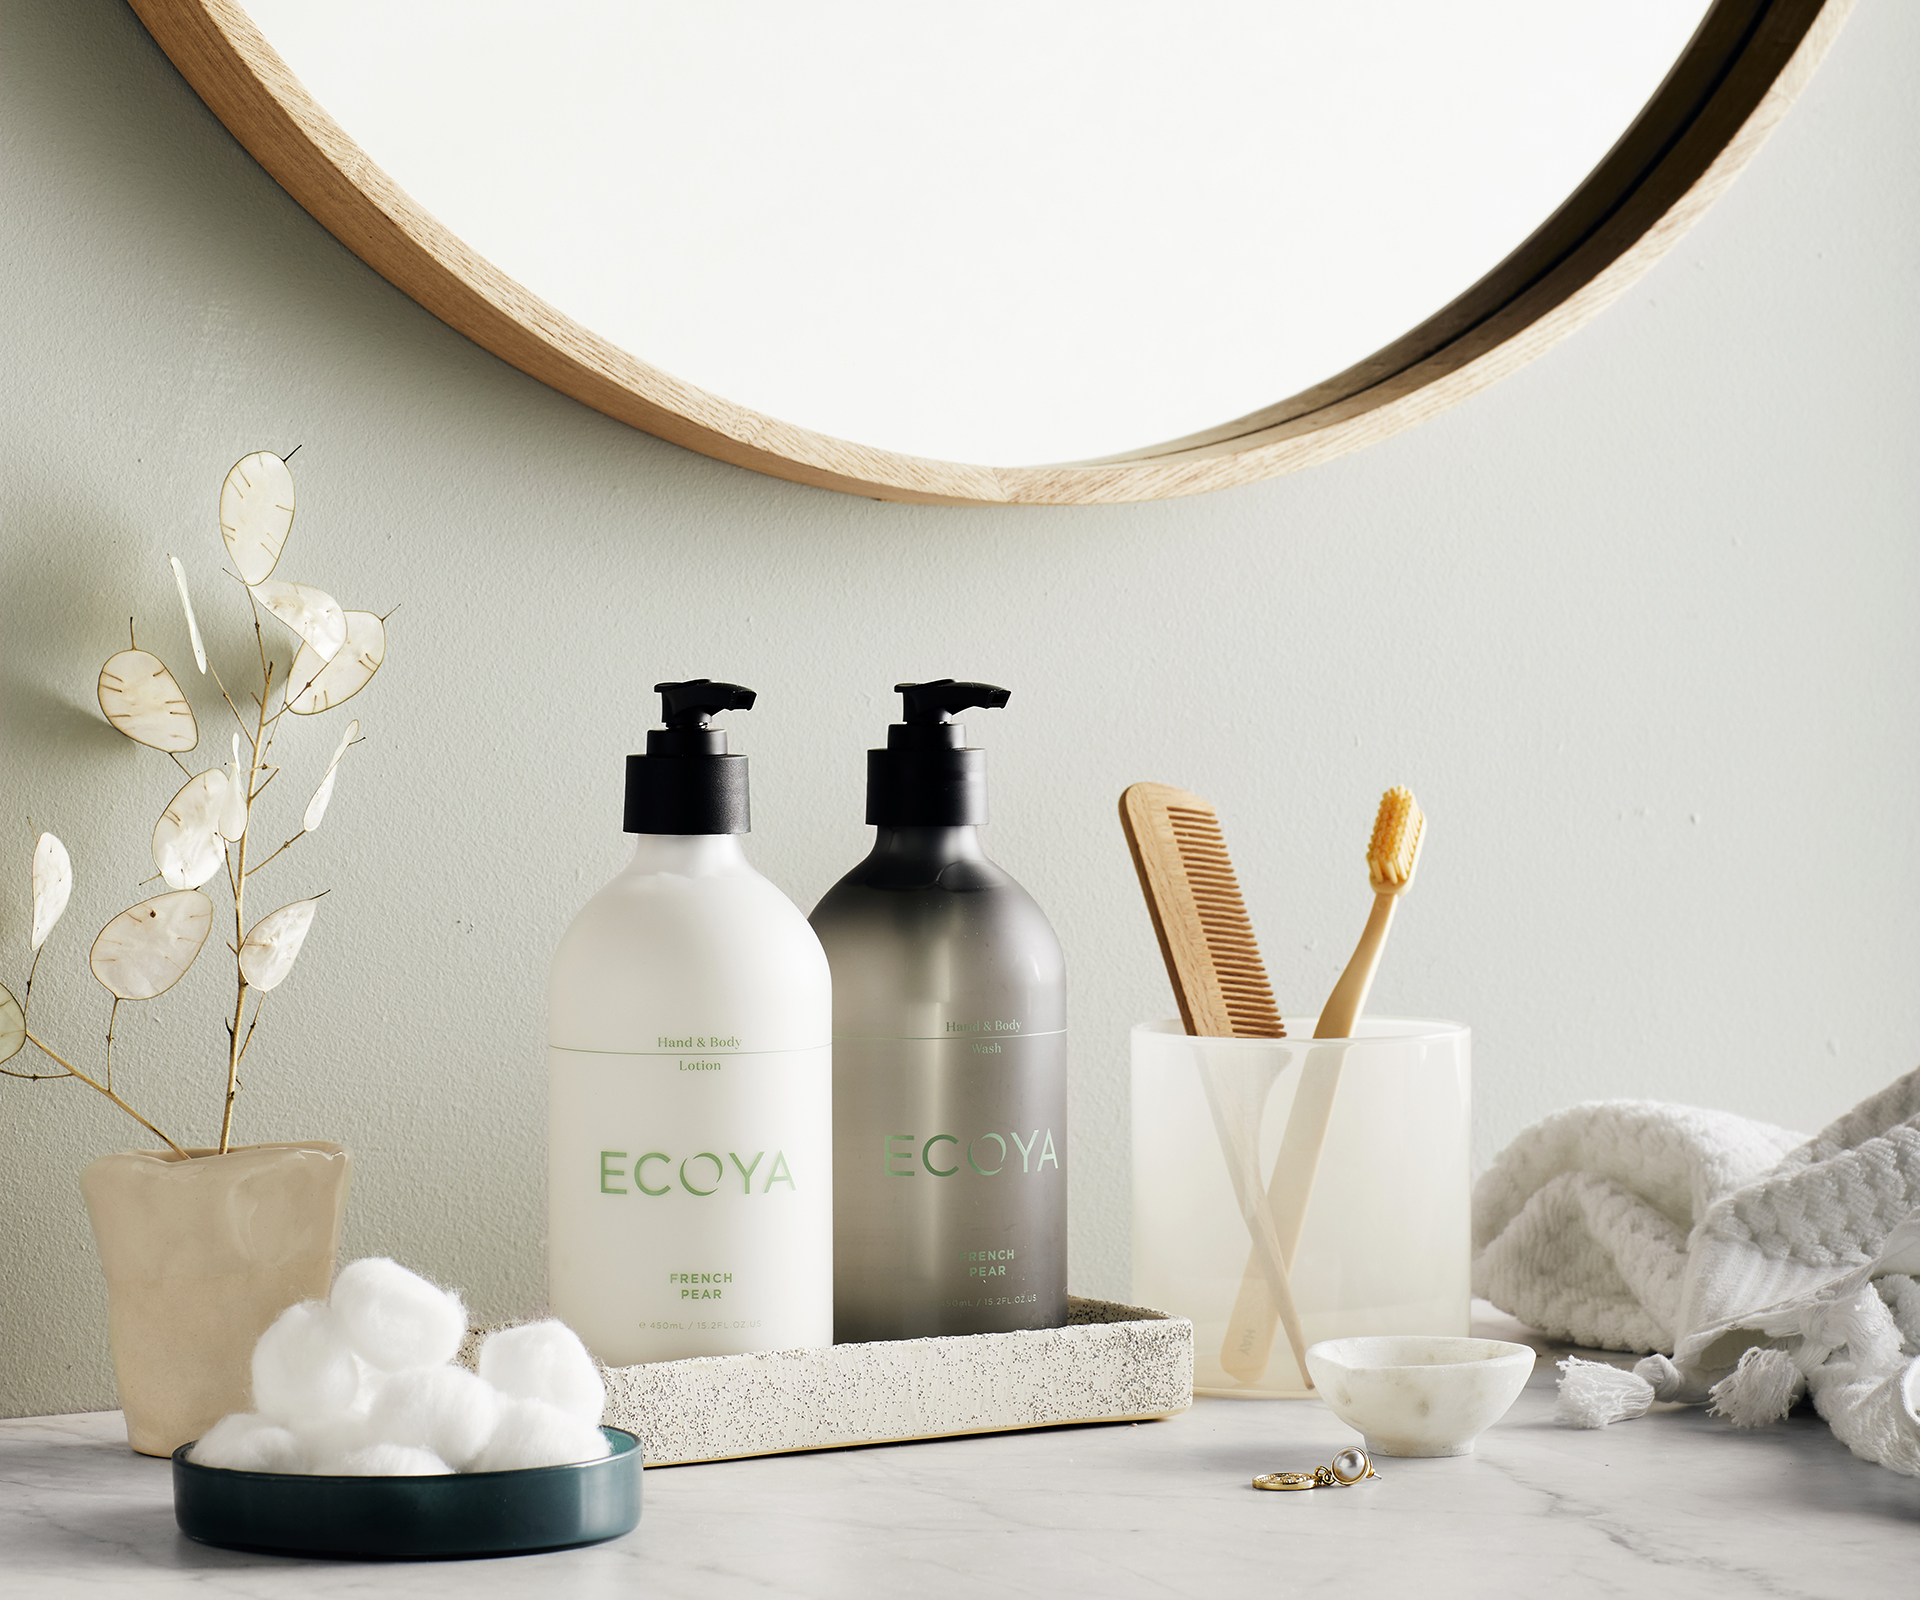 Bathroom décor: 12 stylish countertop accessories | real living